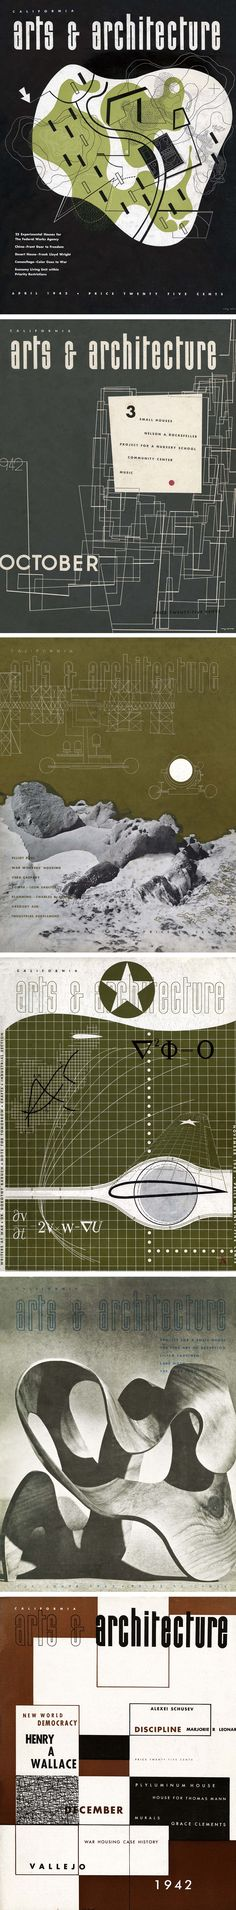 Some covers for John Entenza's ARTS & ARCHITECTURE magazine designed by Ray #Eames #graphicdesign #artsandarchitecture #midcenturymodern #moderngraphics